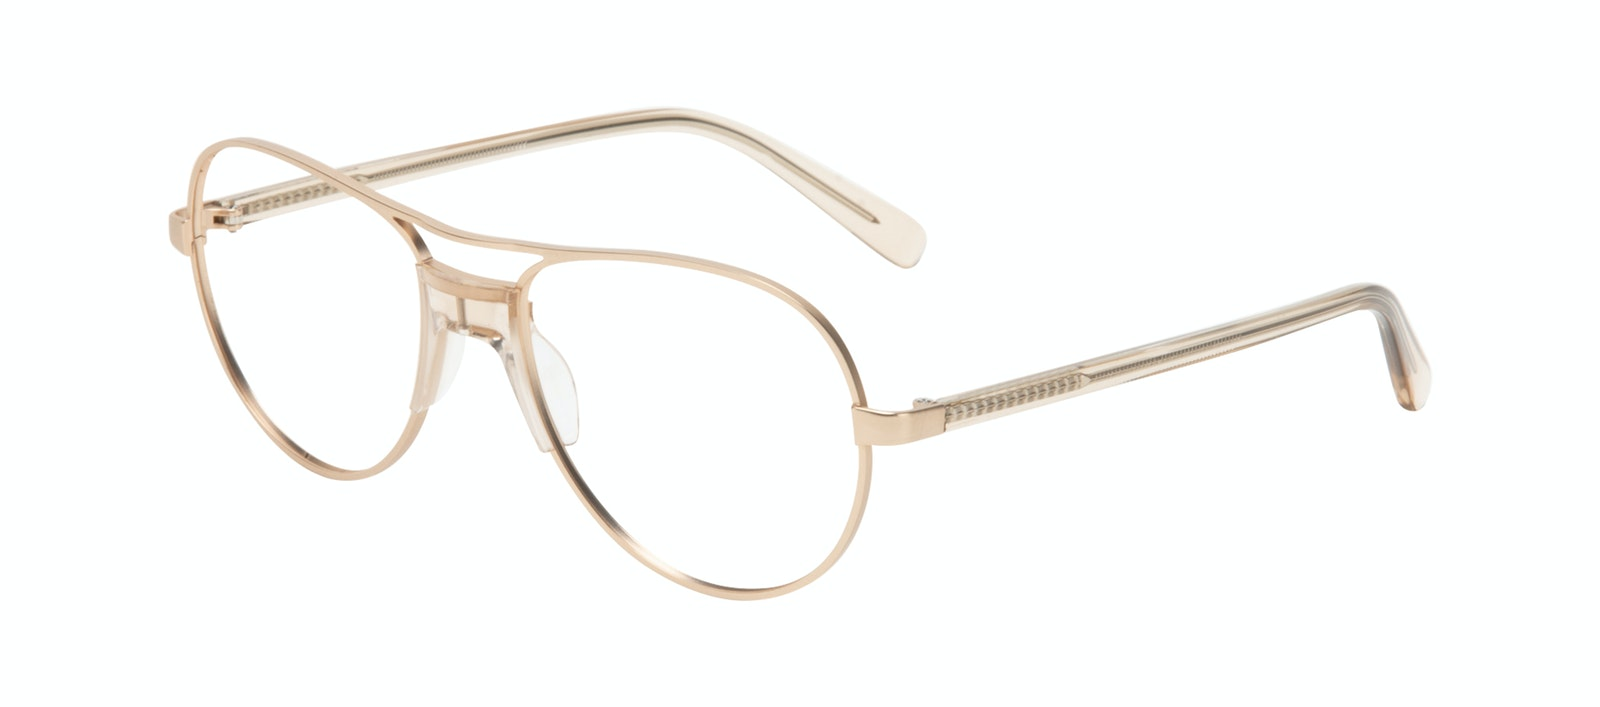 Affordable Fashion Glasses Aviator Eyeglasses Women Ultimate Gold Tilt